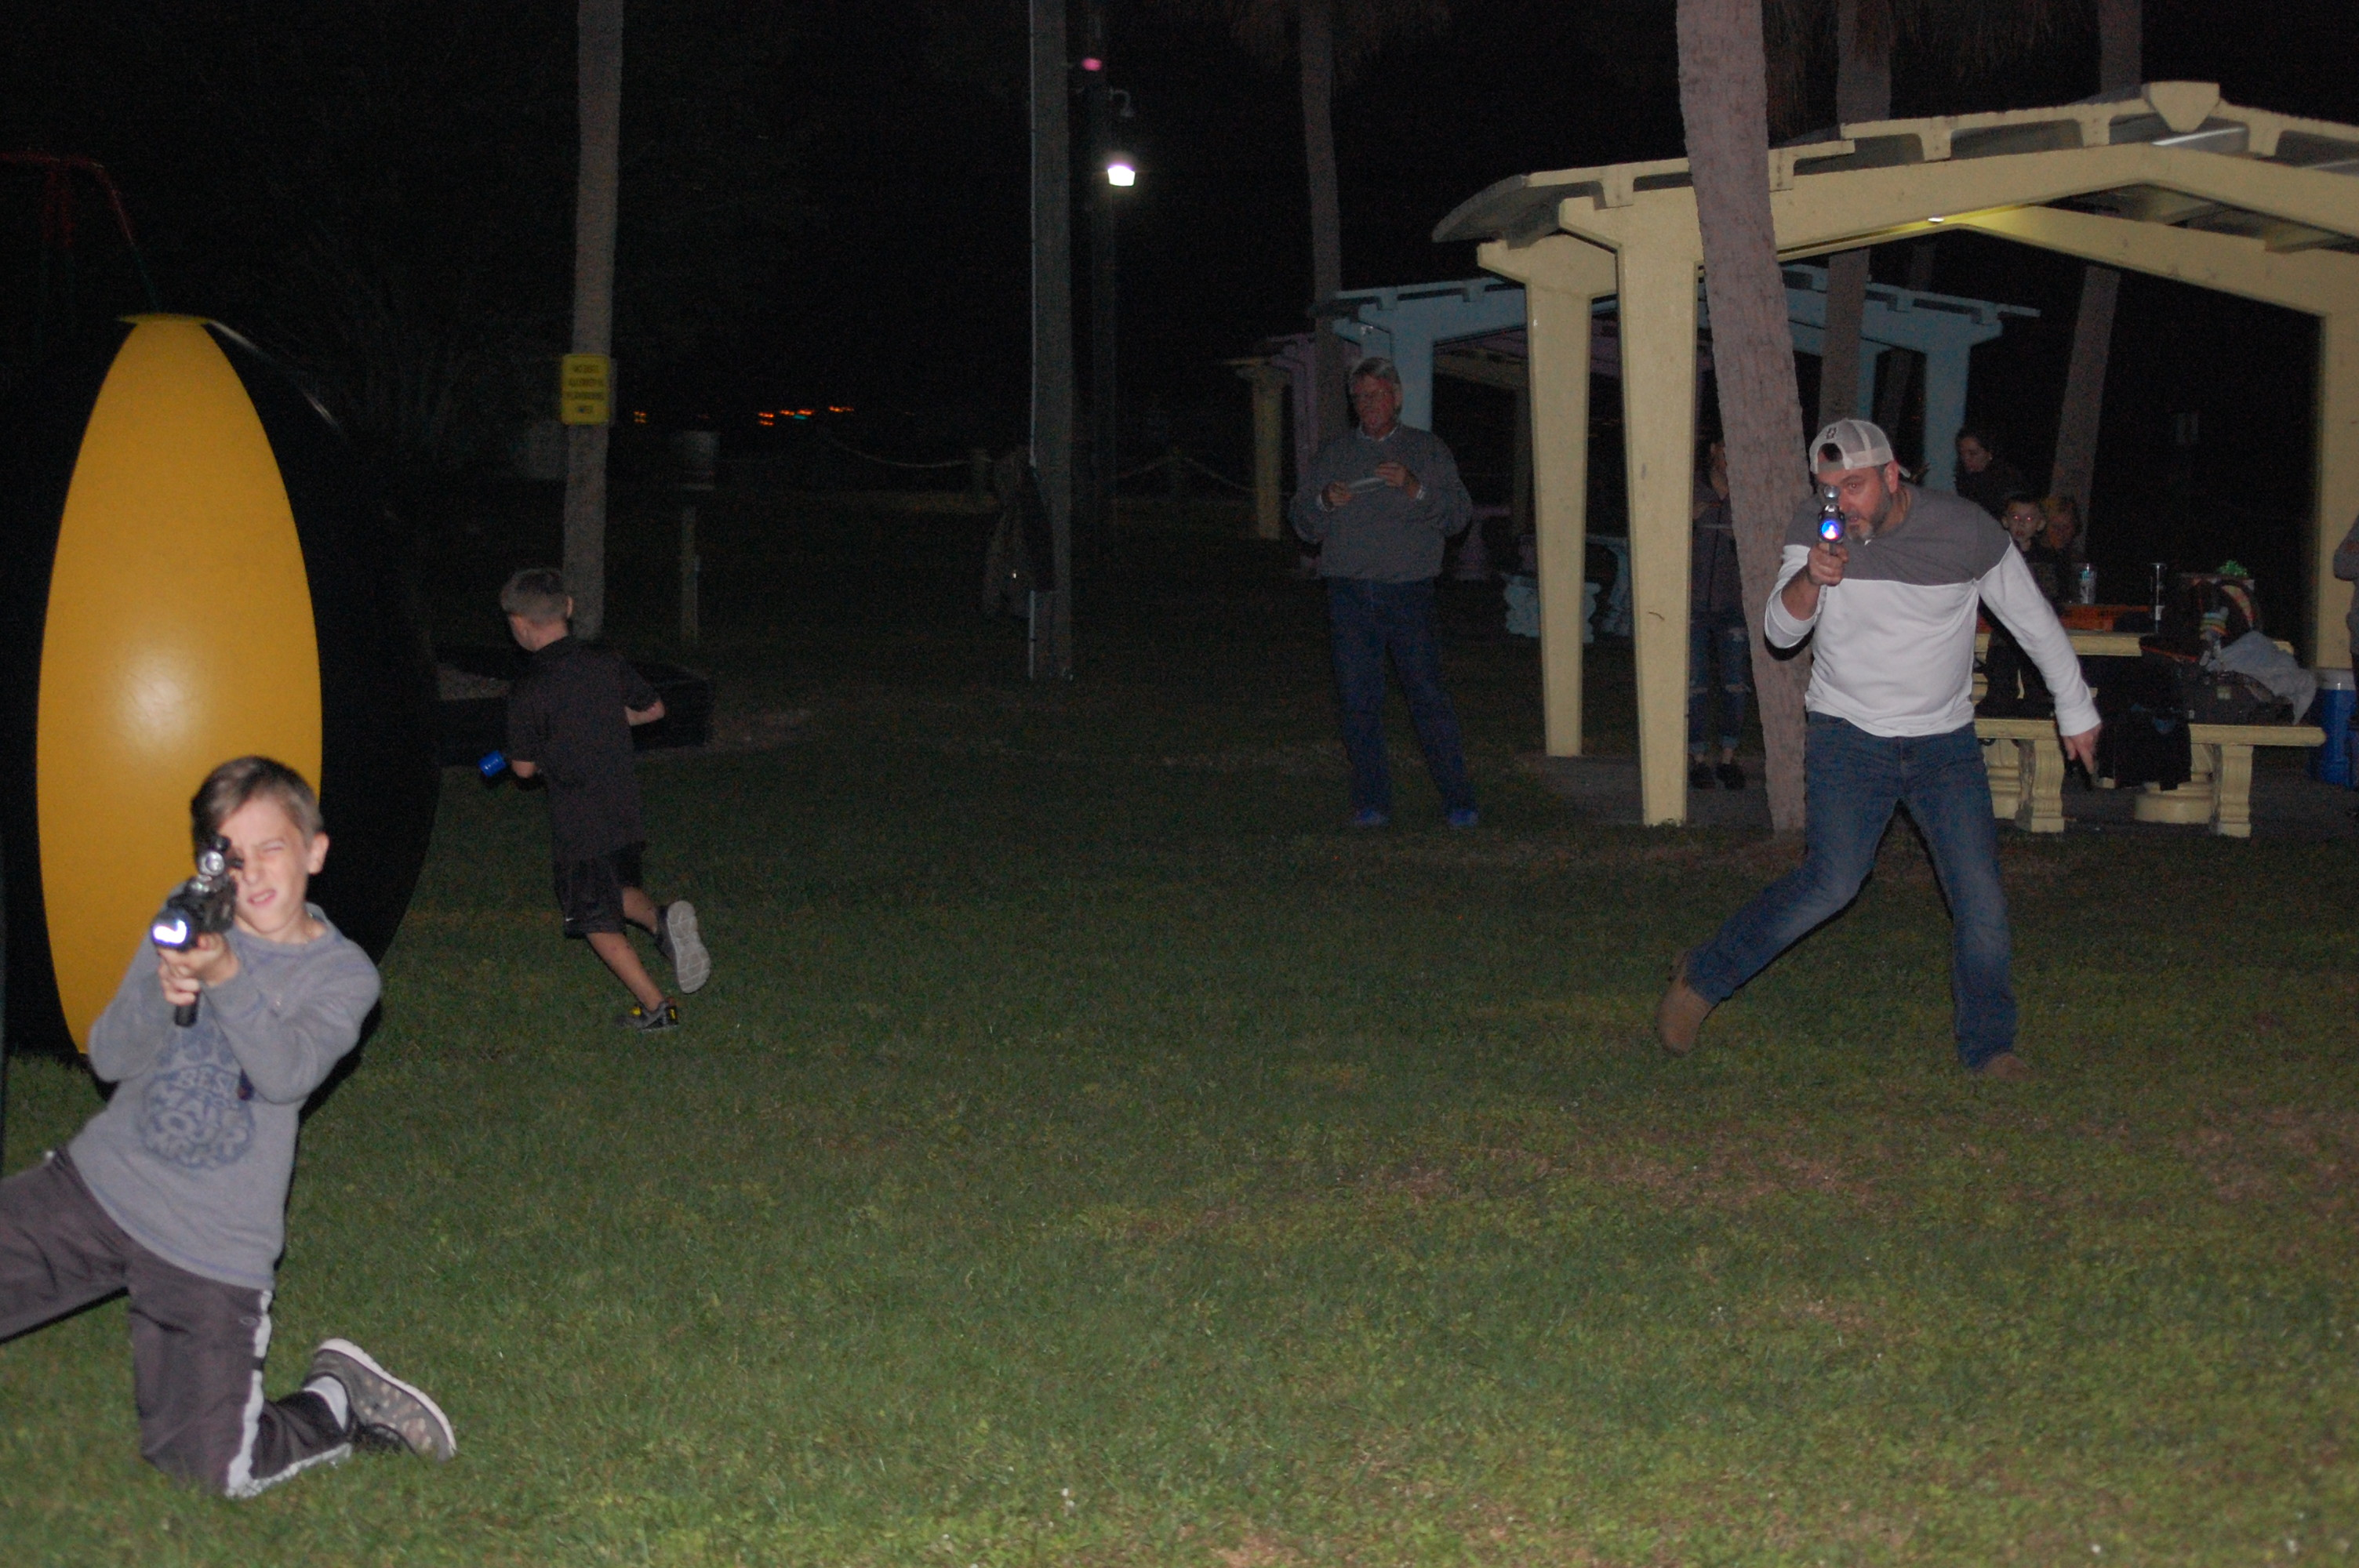 Mobile Laser Tag in Punta Gorda